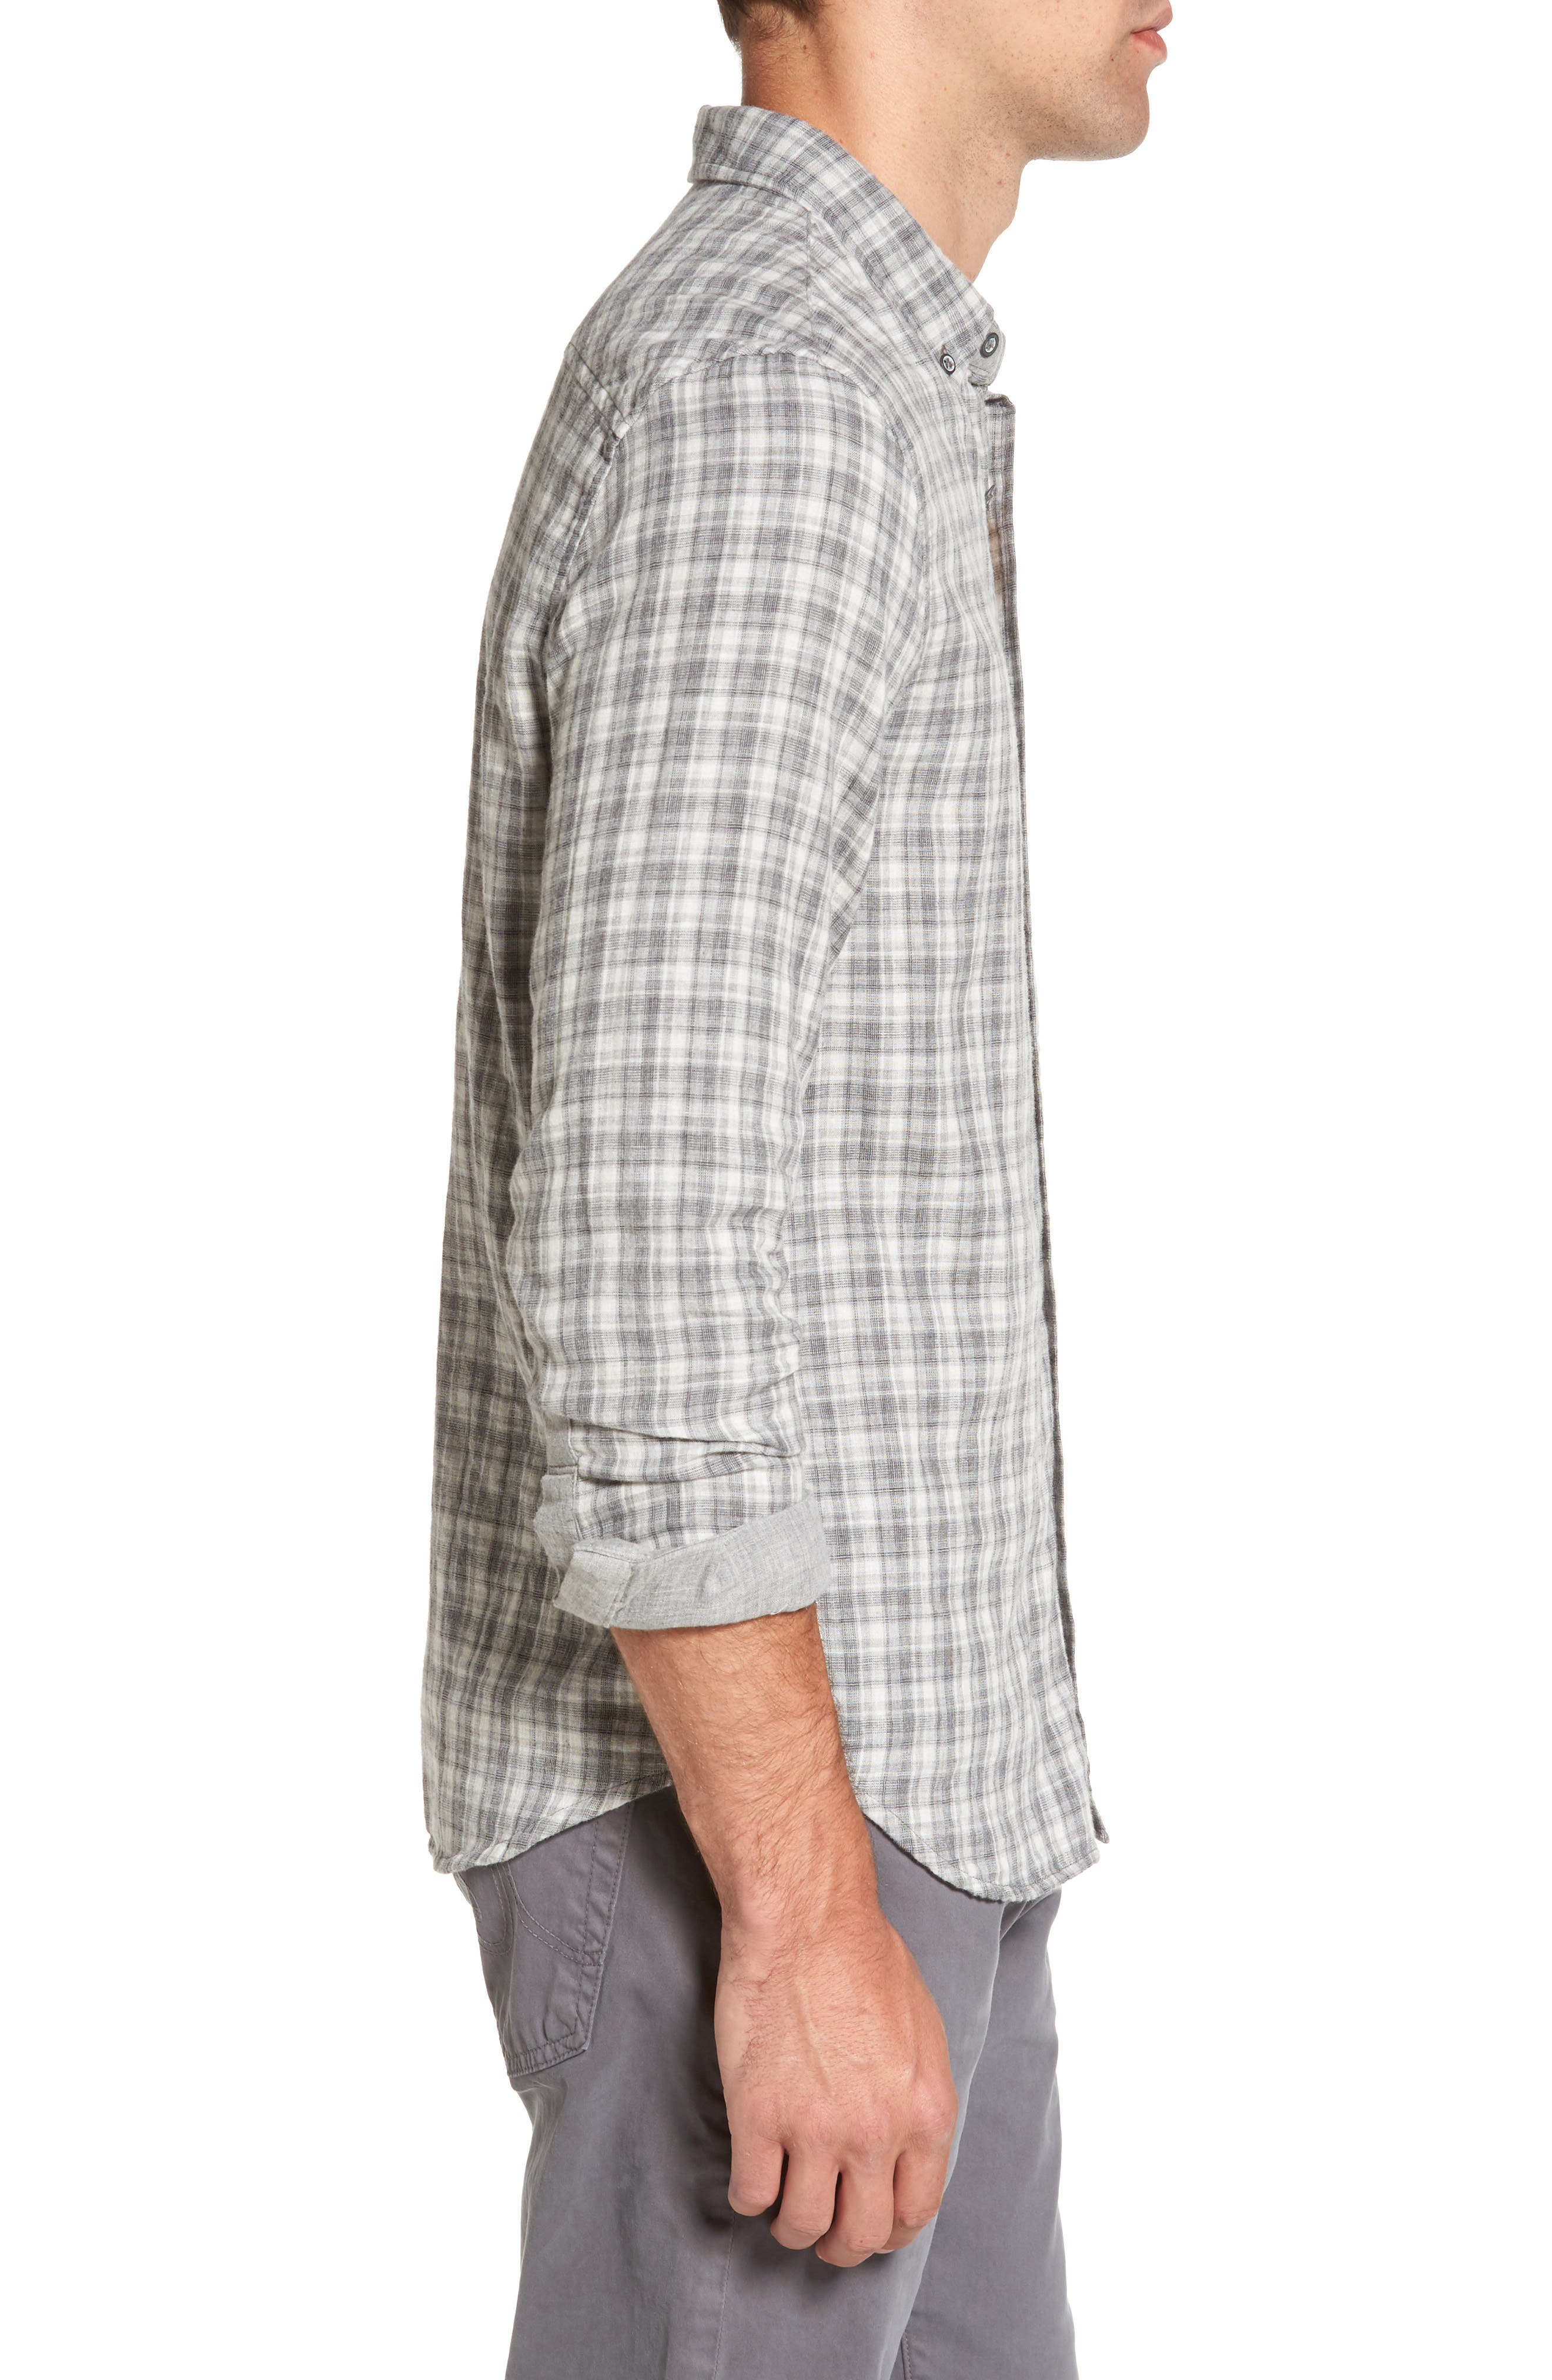 Grady Plaid Sport Shirt,                             Alternate thumbnail 3, color,                             Dlp Heather Grey/ White